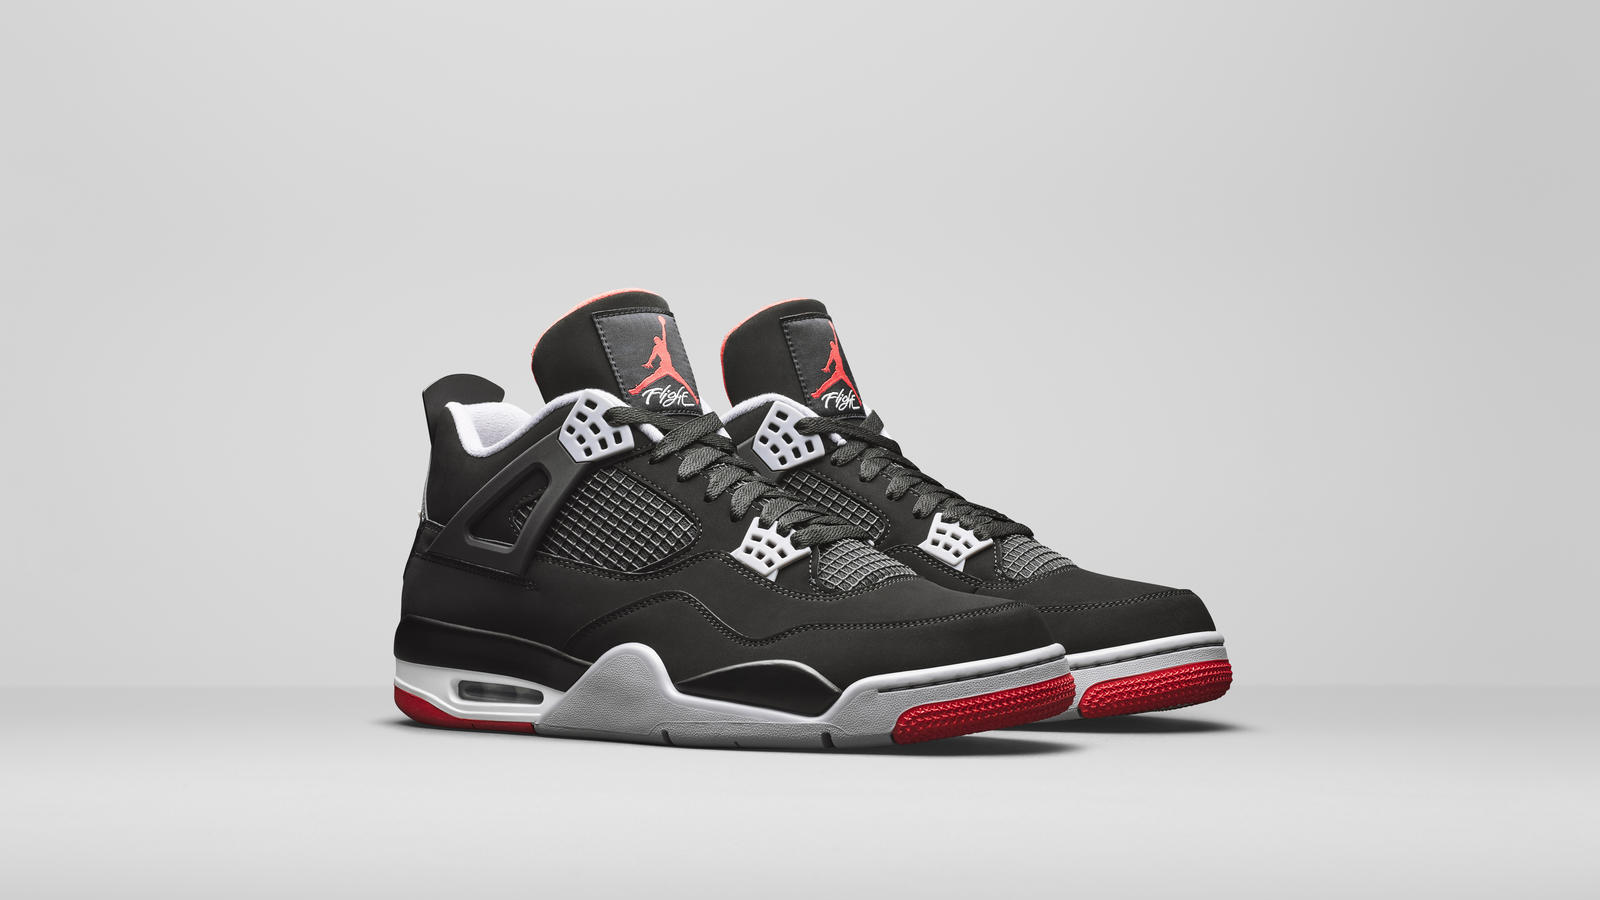 uk availability 42399 d3c11 On May 4th, Jordan Brand will continue its 30th anniversary celebration of  the Air Jordan 4 Retro with the release of the BRED colorway.